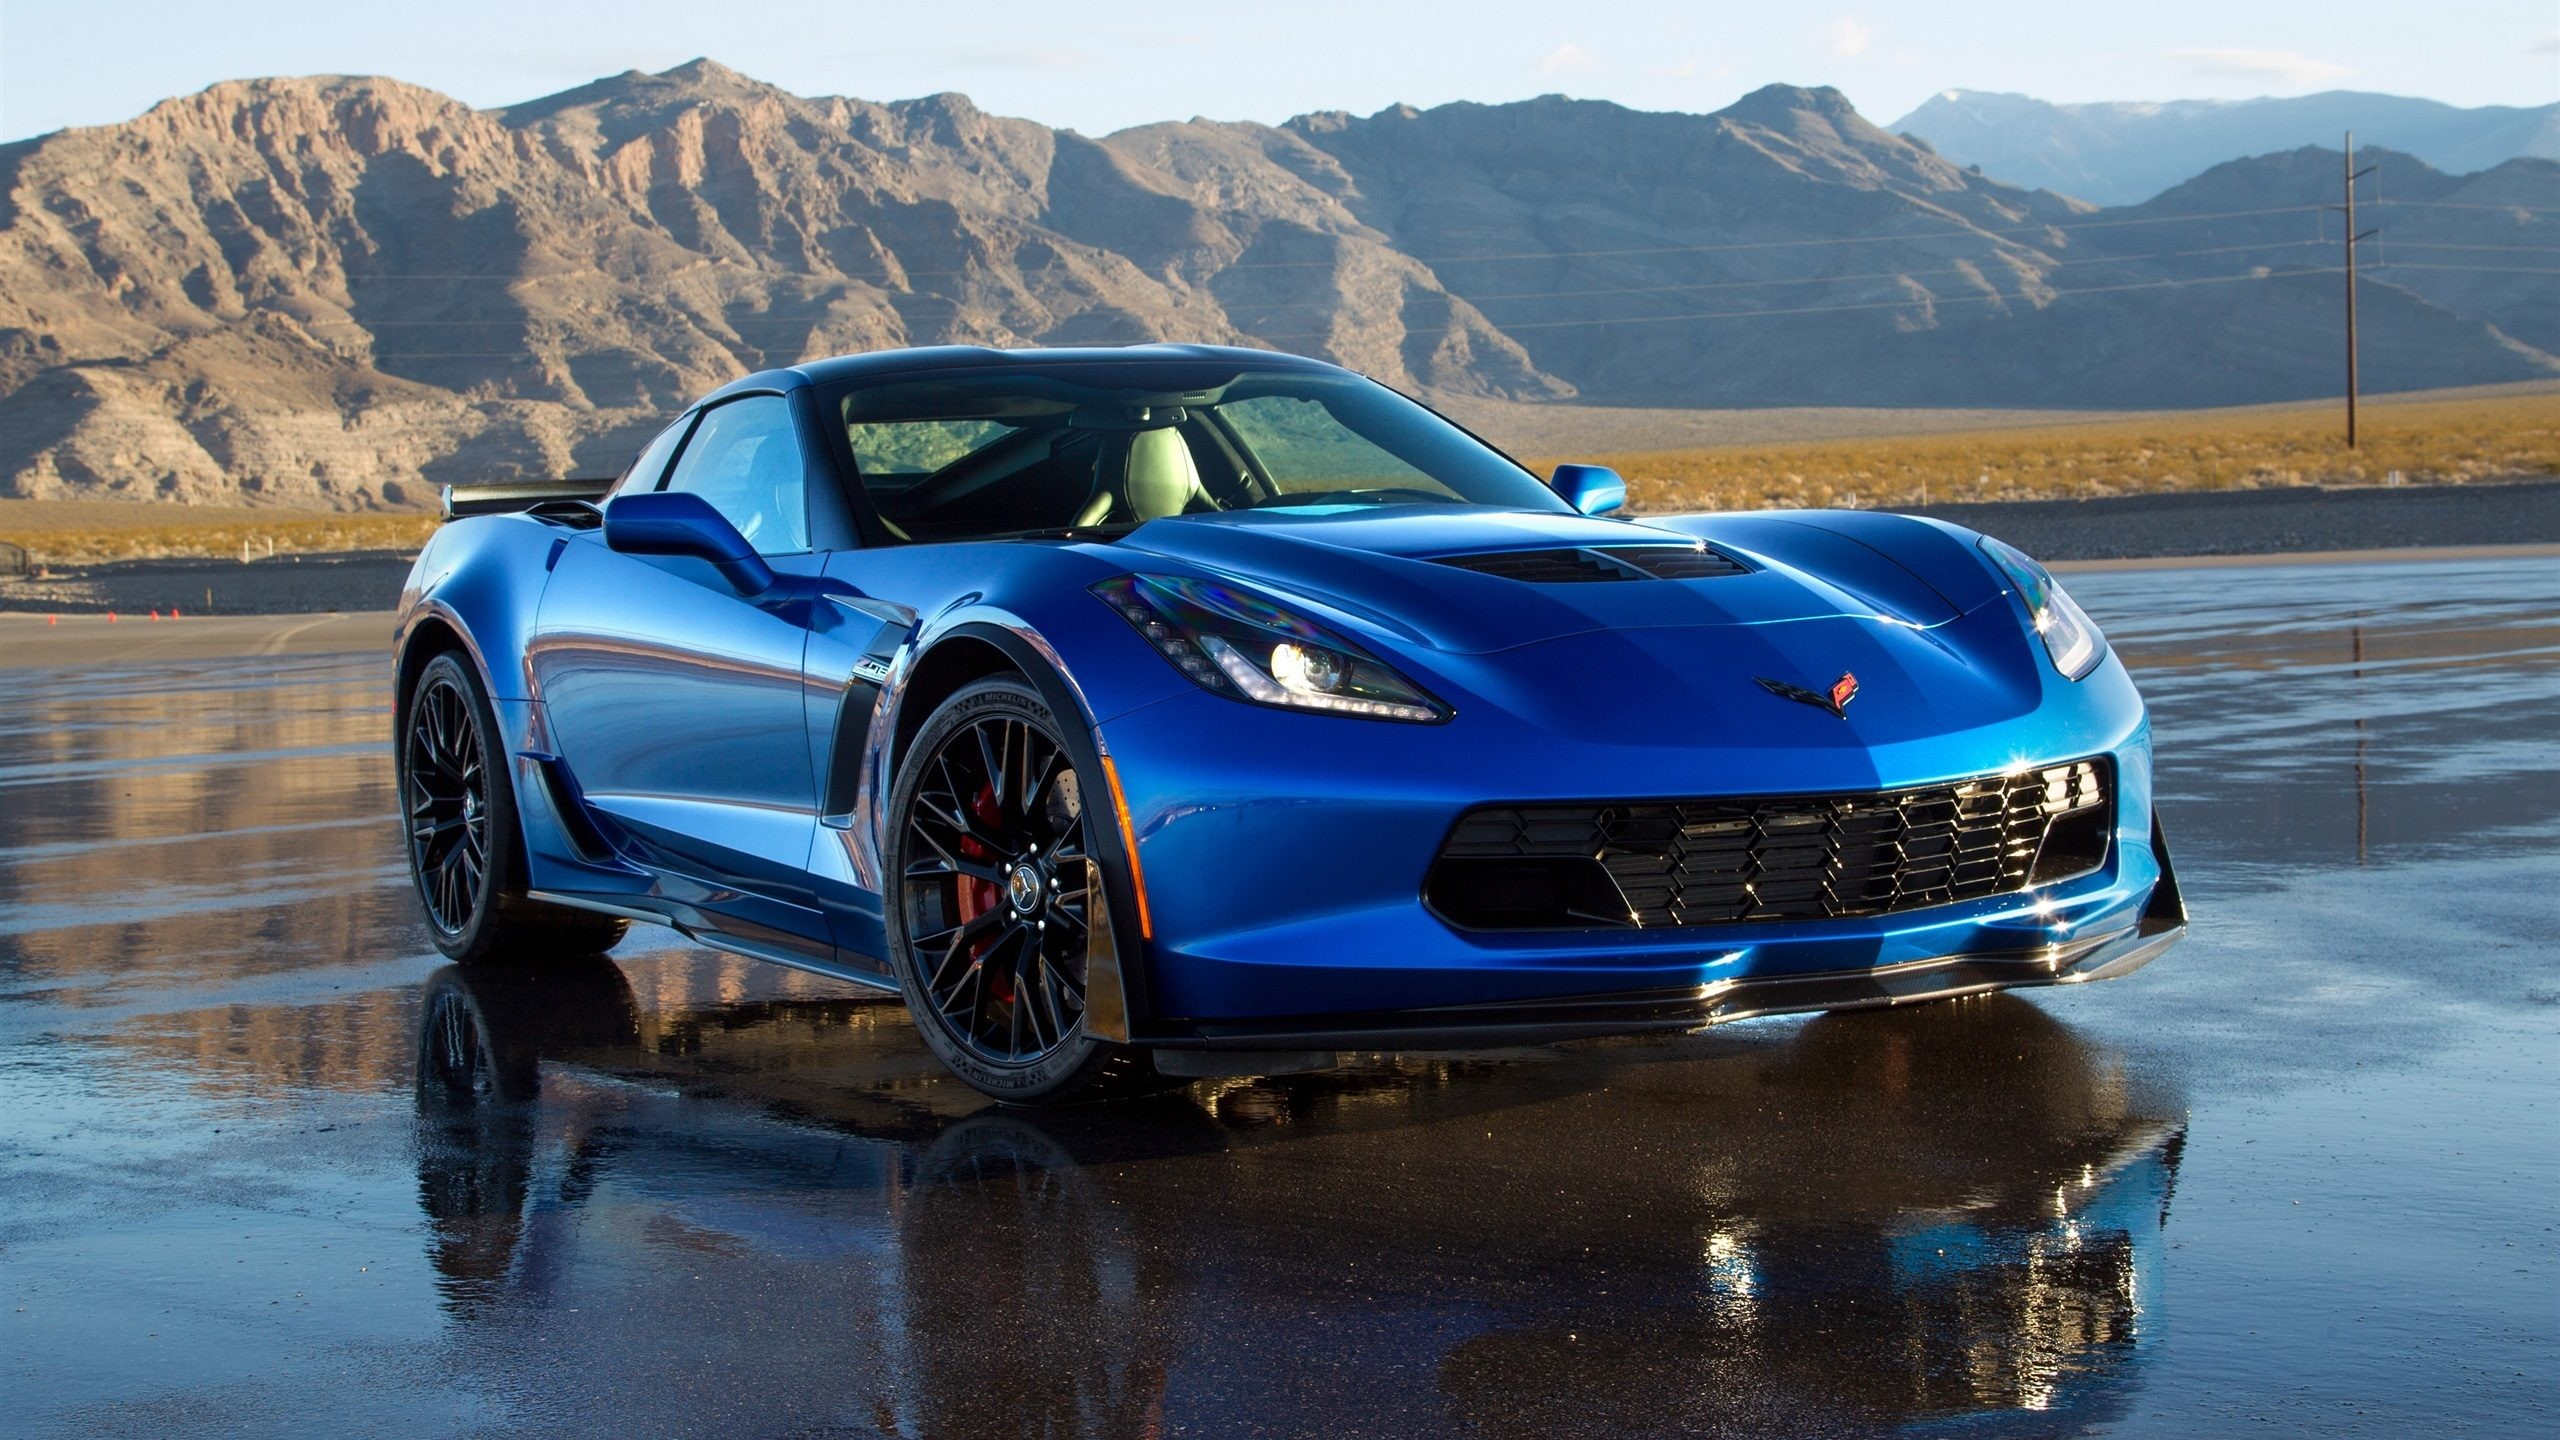 2560x1440 2014 Chevrolet Corvette C7 Stingray Wallpaper | HD Car Wallpapers ...